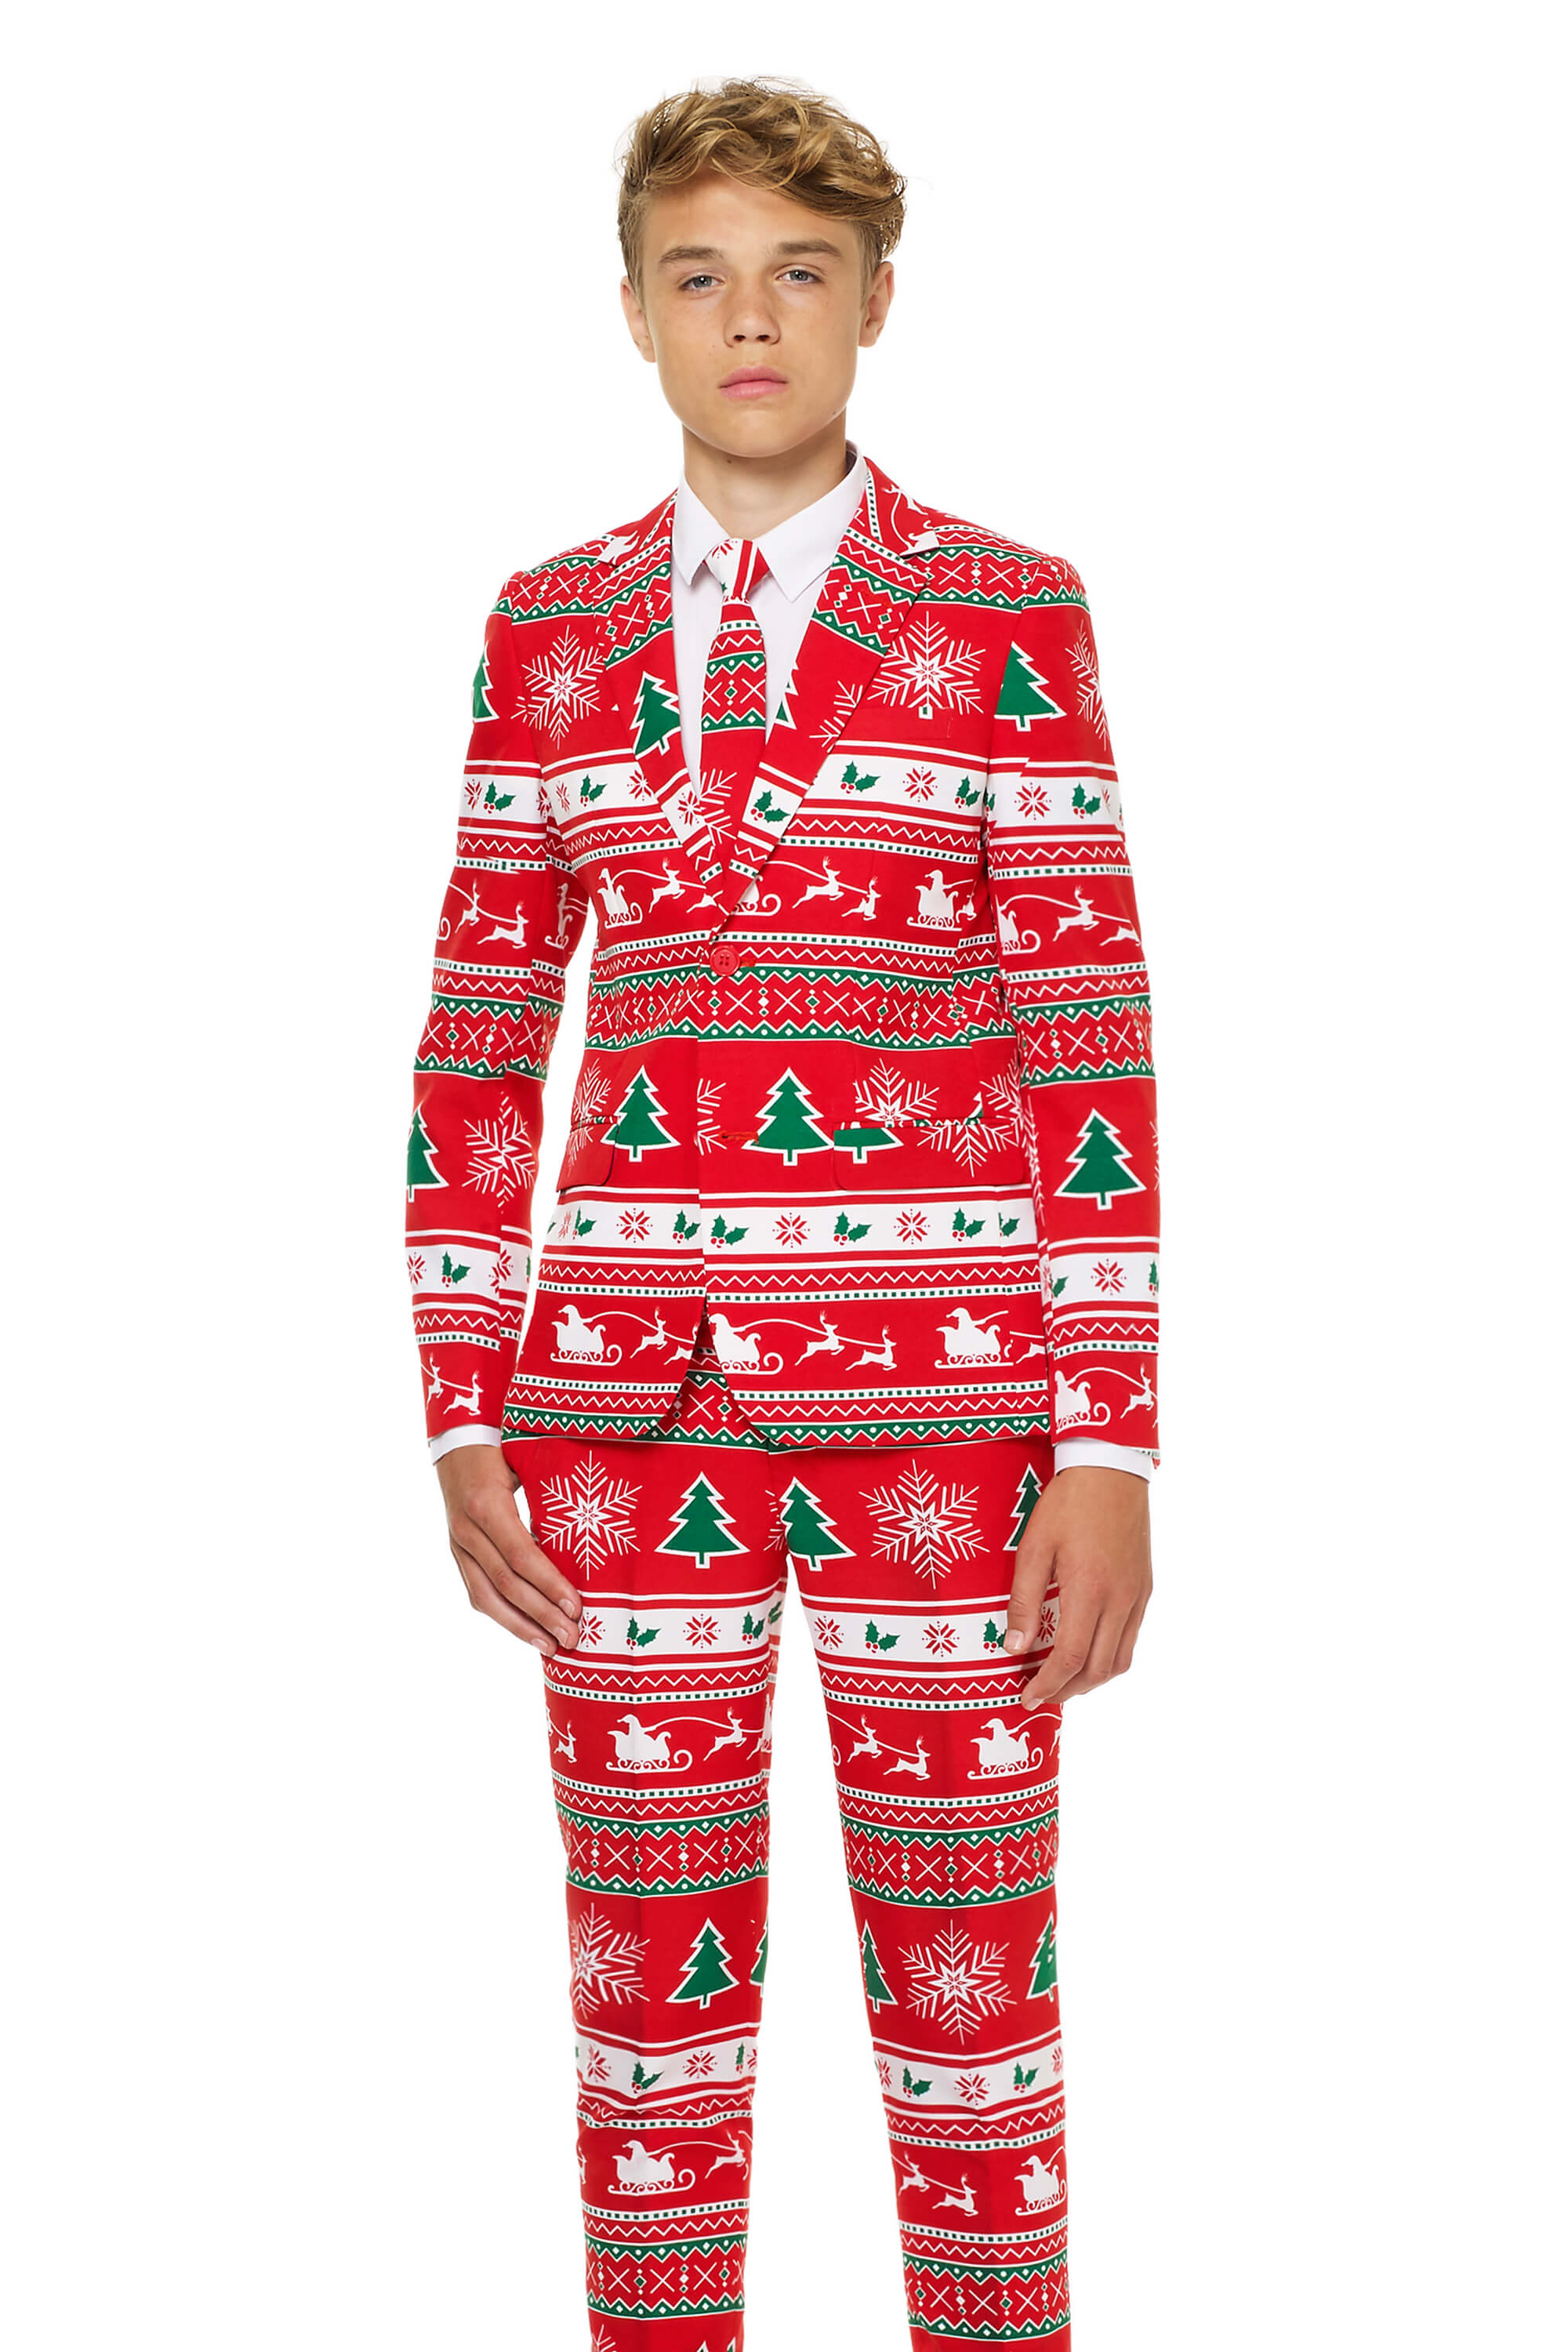 Shinesty Christmas Suits.The Tween Soiree Of Sin Teen Ugly Christmas Suit